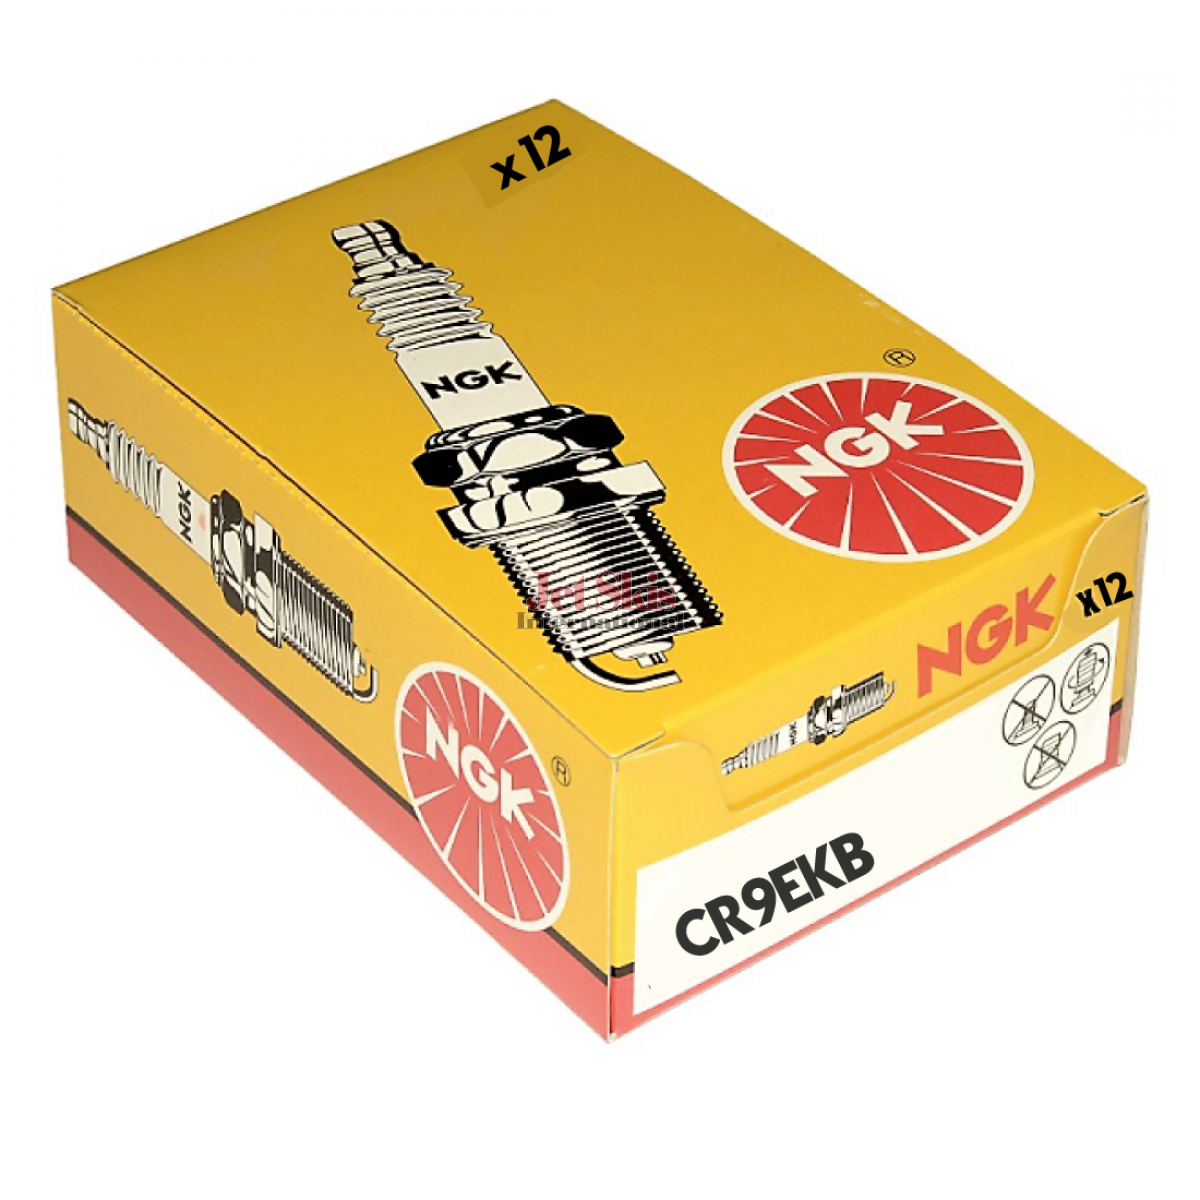 CR9EKB NGK Spark Plug Single Piece Pack for Stock Number 2305 or Copper Core Part No